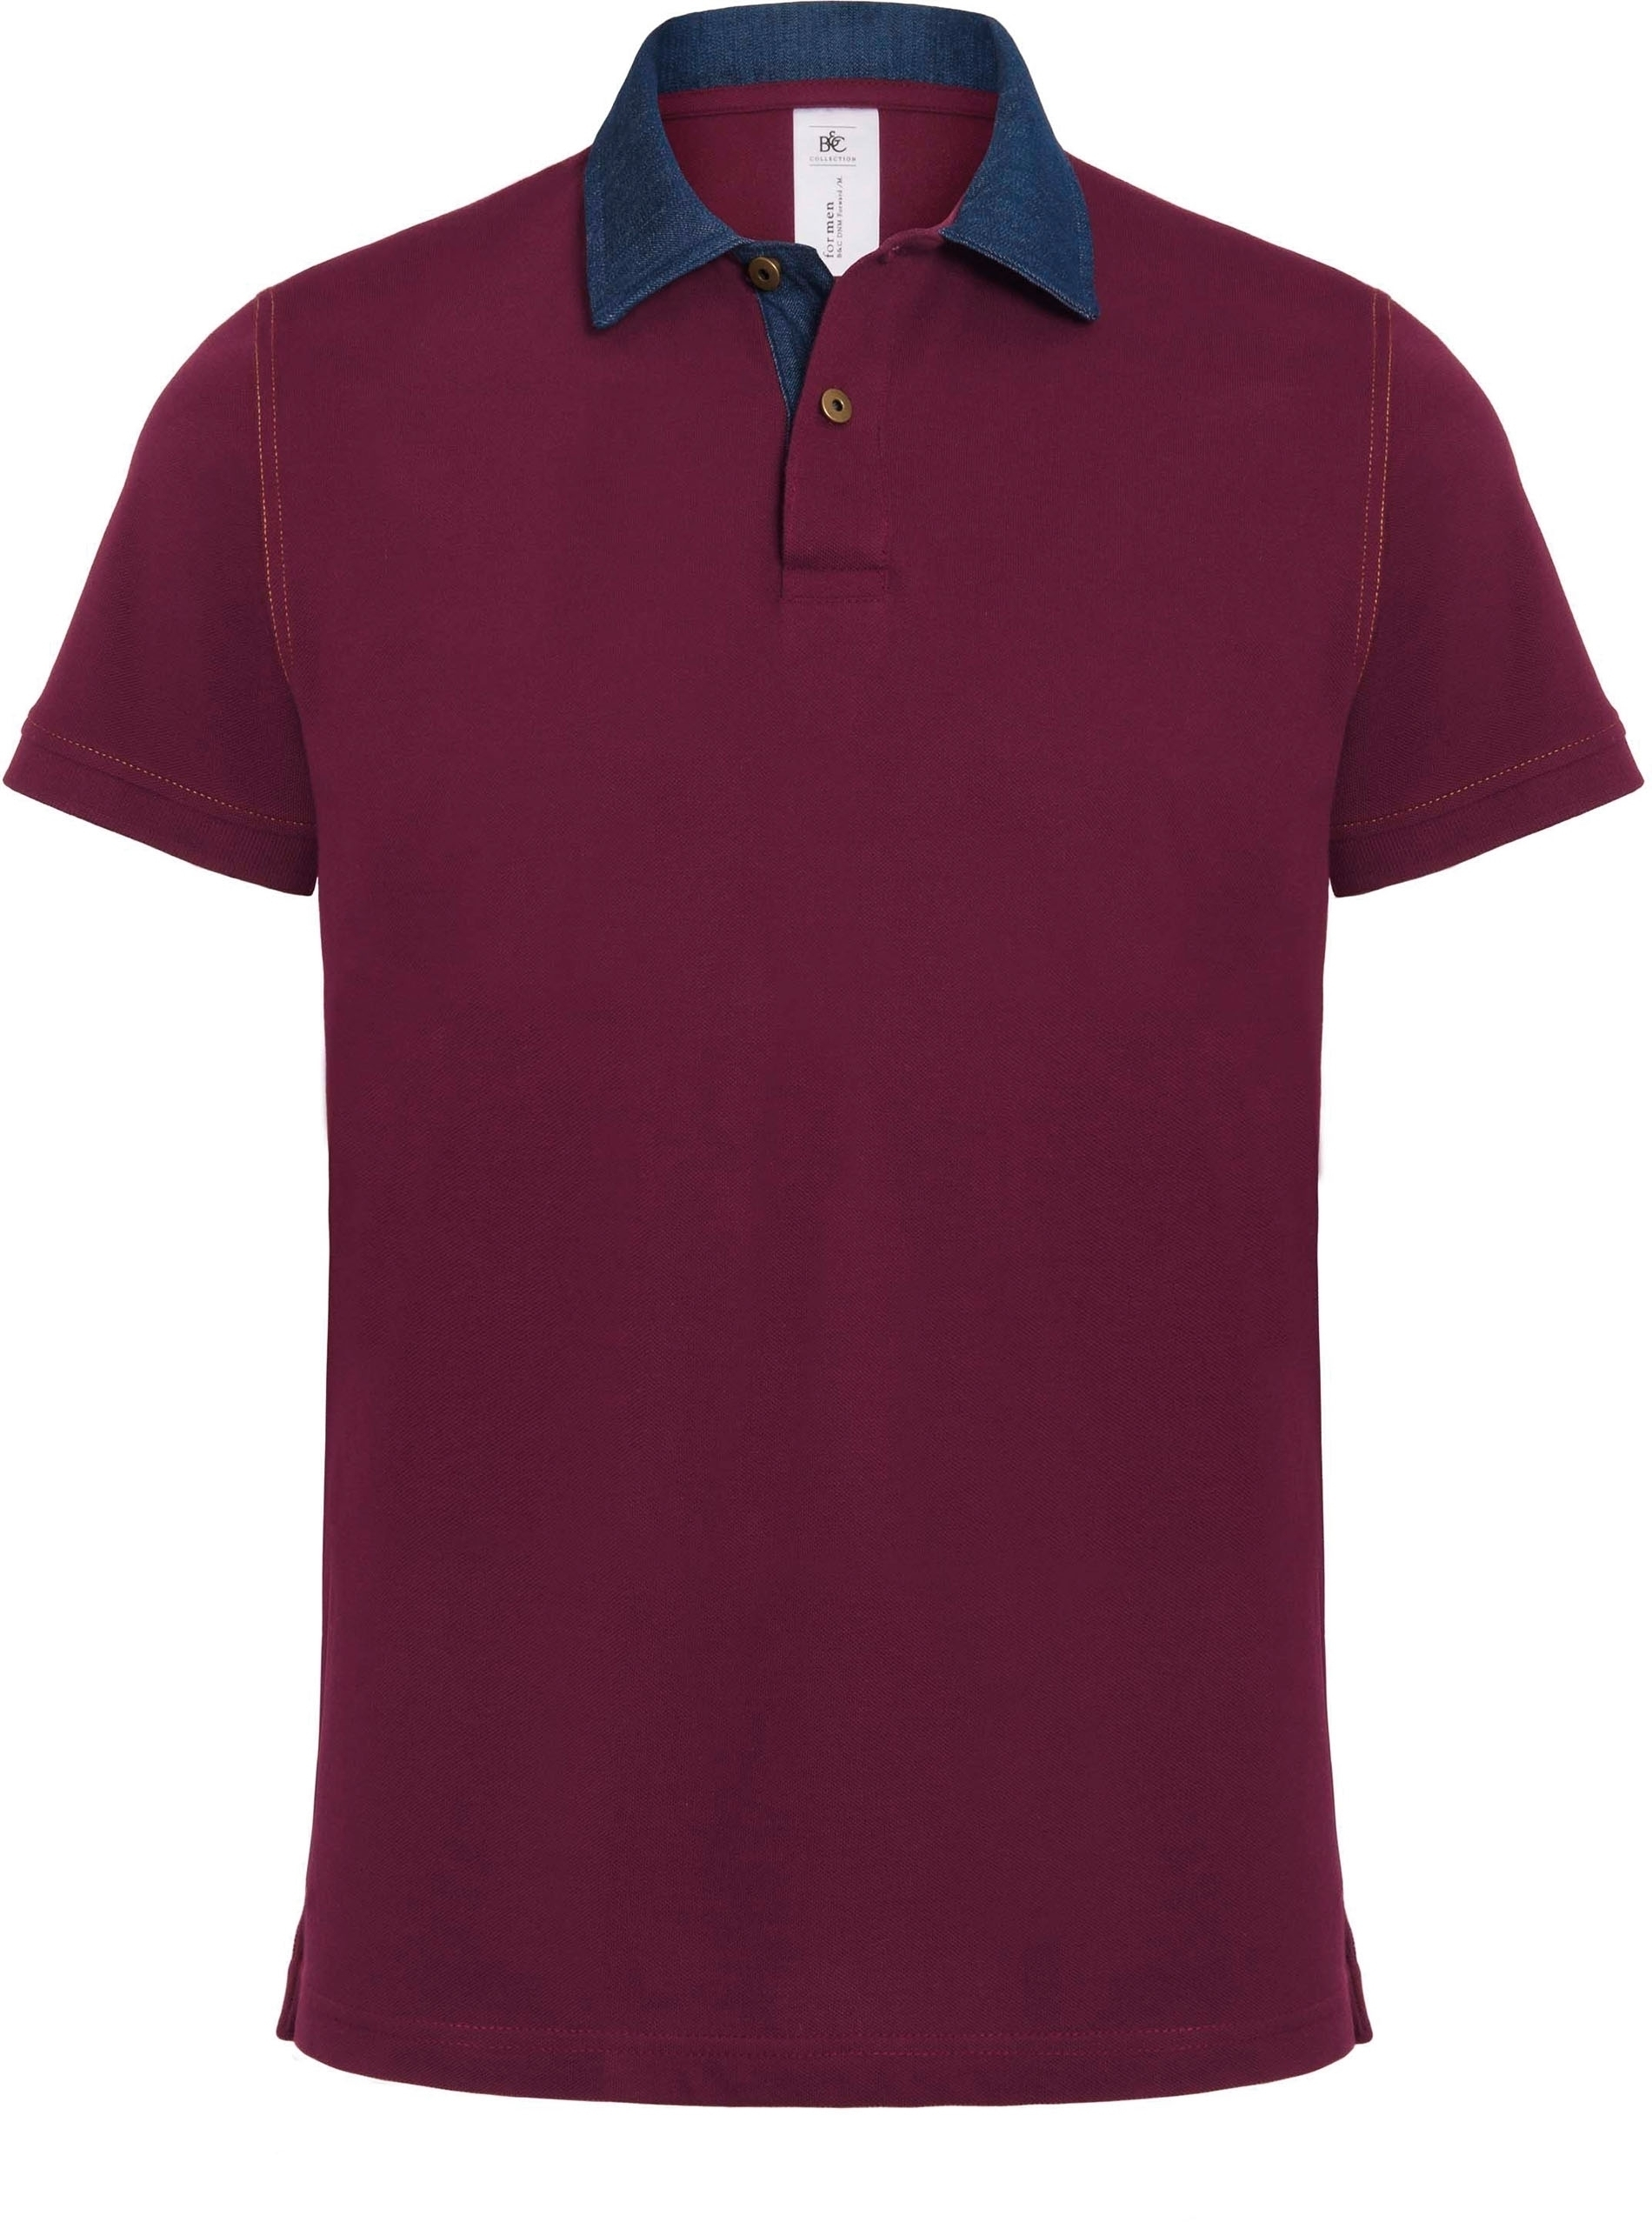 POLO HOMME DNM FORWARD Denim / Burgundy Bleu